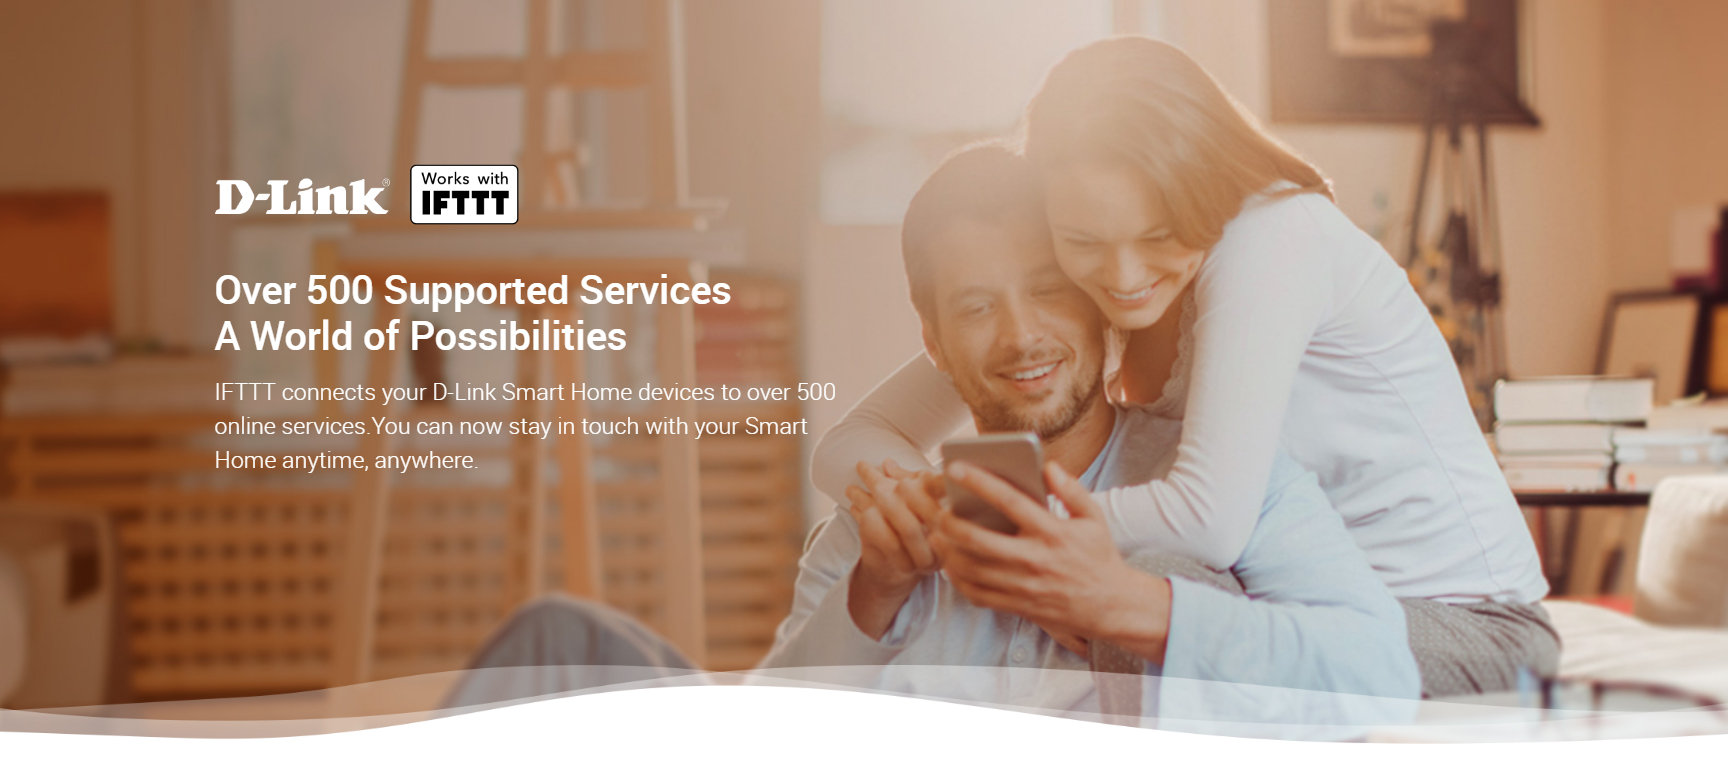 Over 500 Supported Services a World of Possibilities